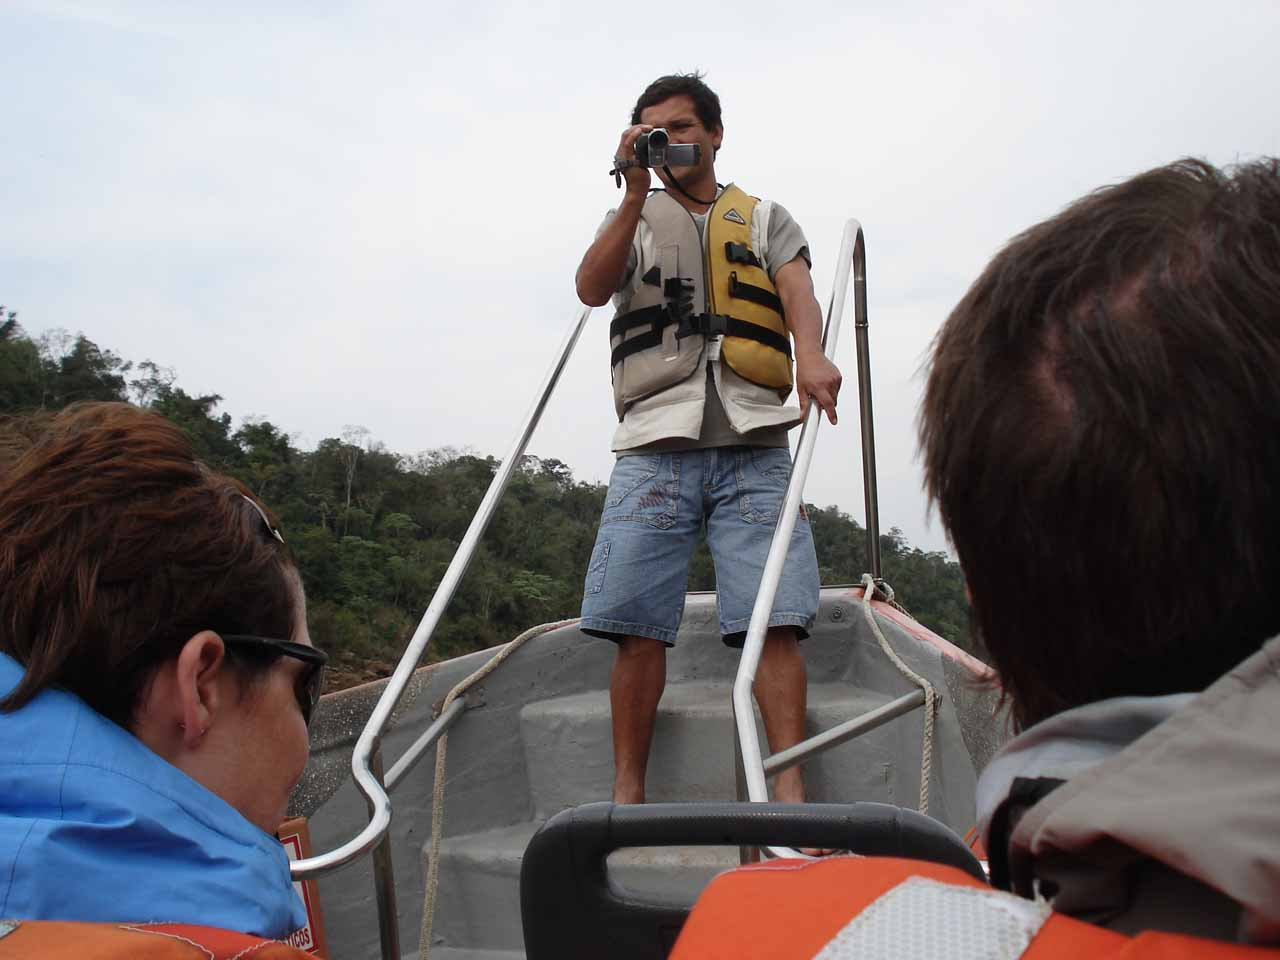 Employee at front of the boat shooting the whole experience